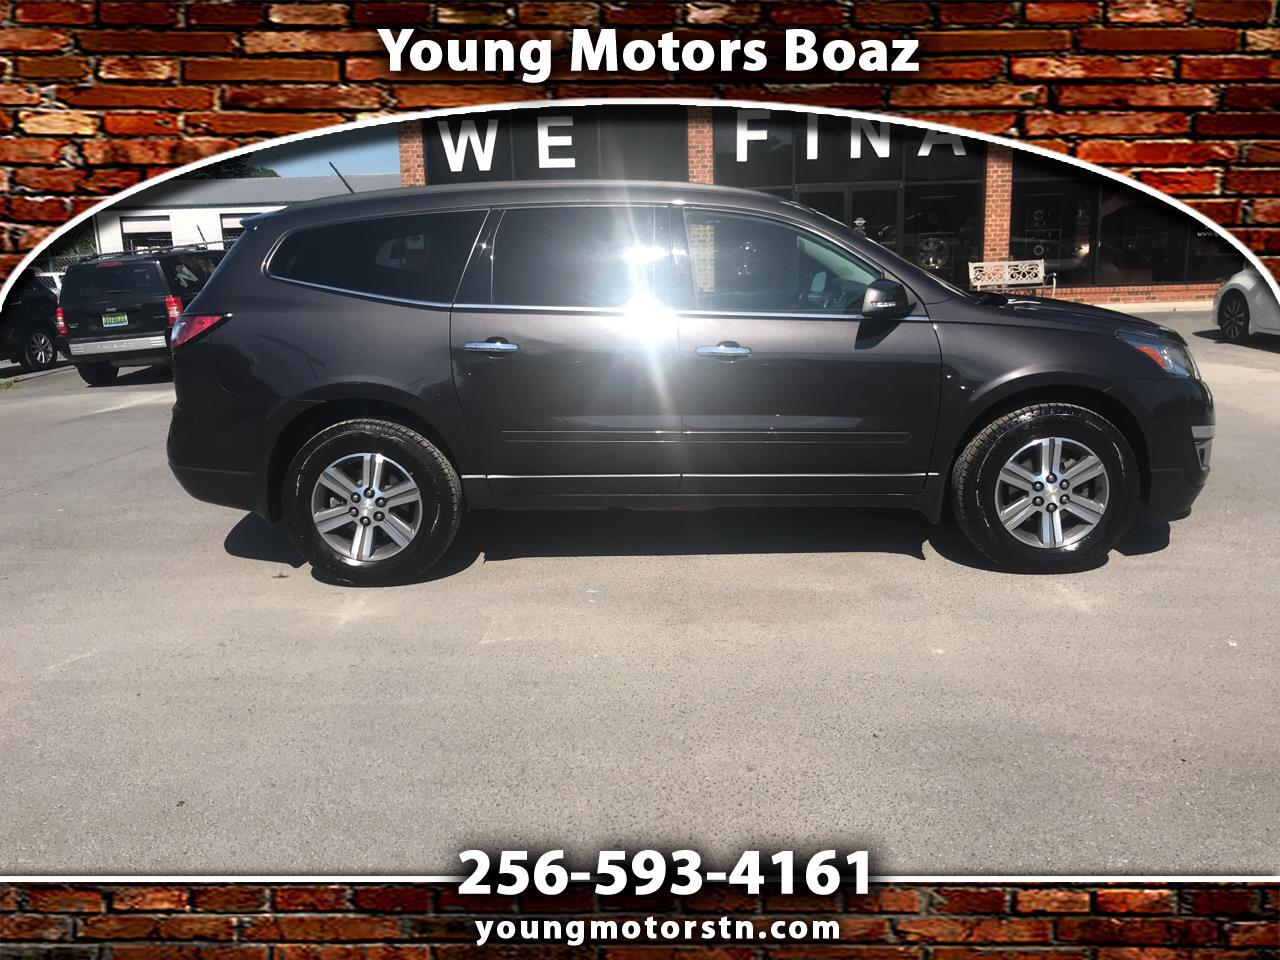 2015 Chevrolet Traverse FWD 4dr LT Leather w/3LT